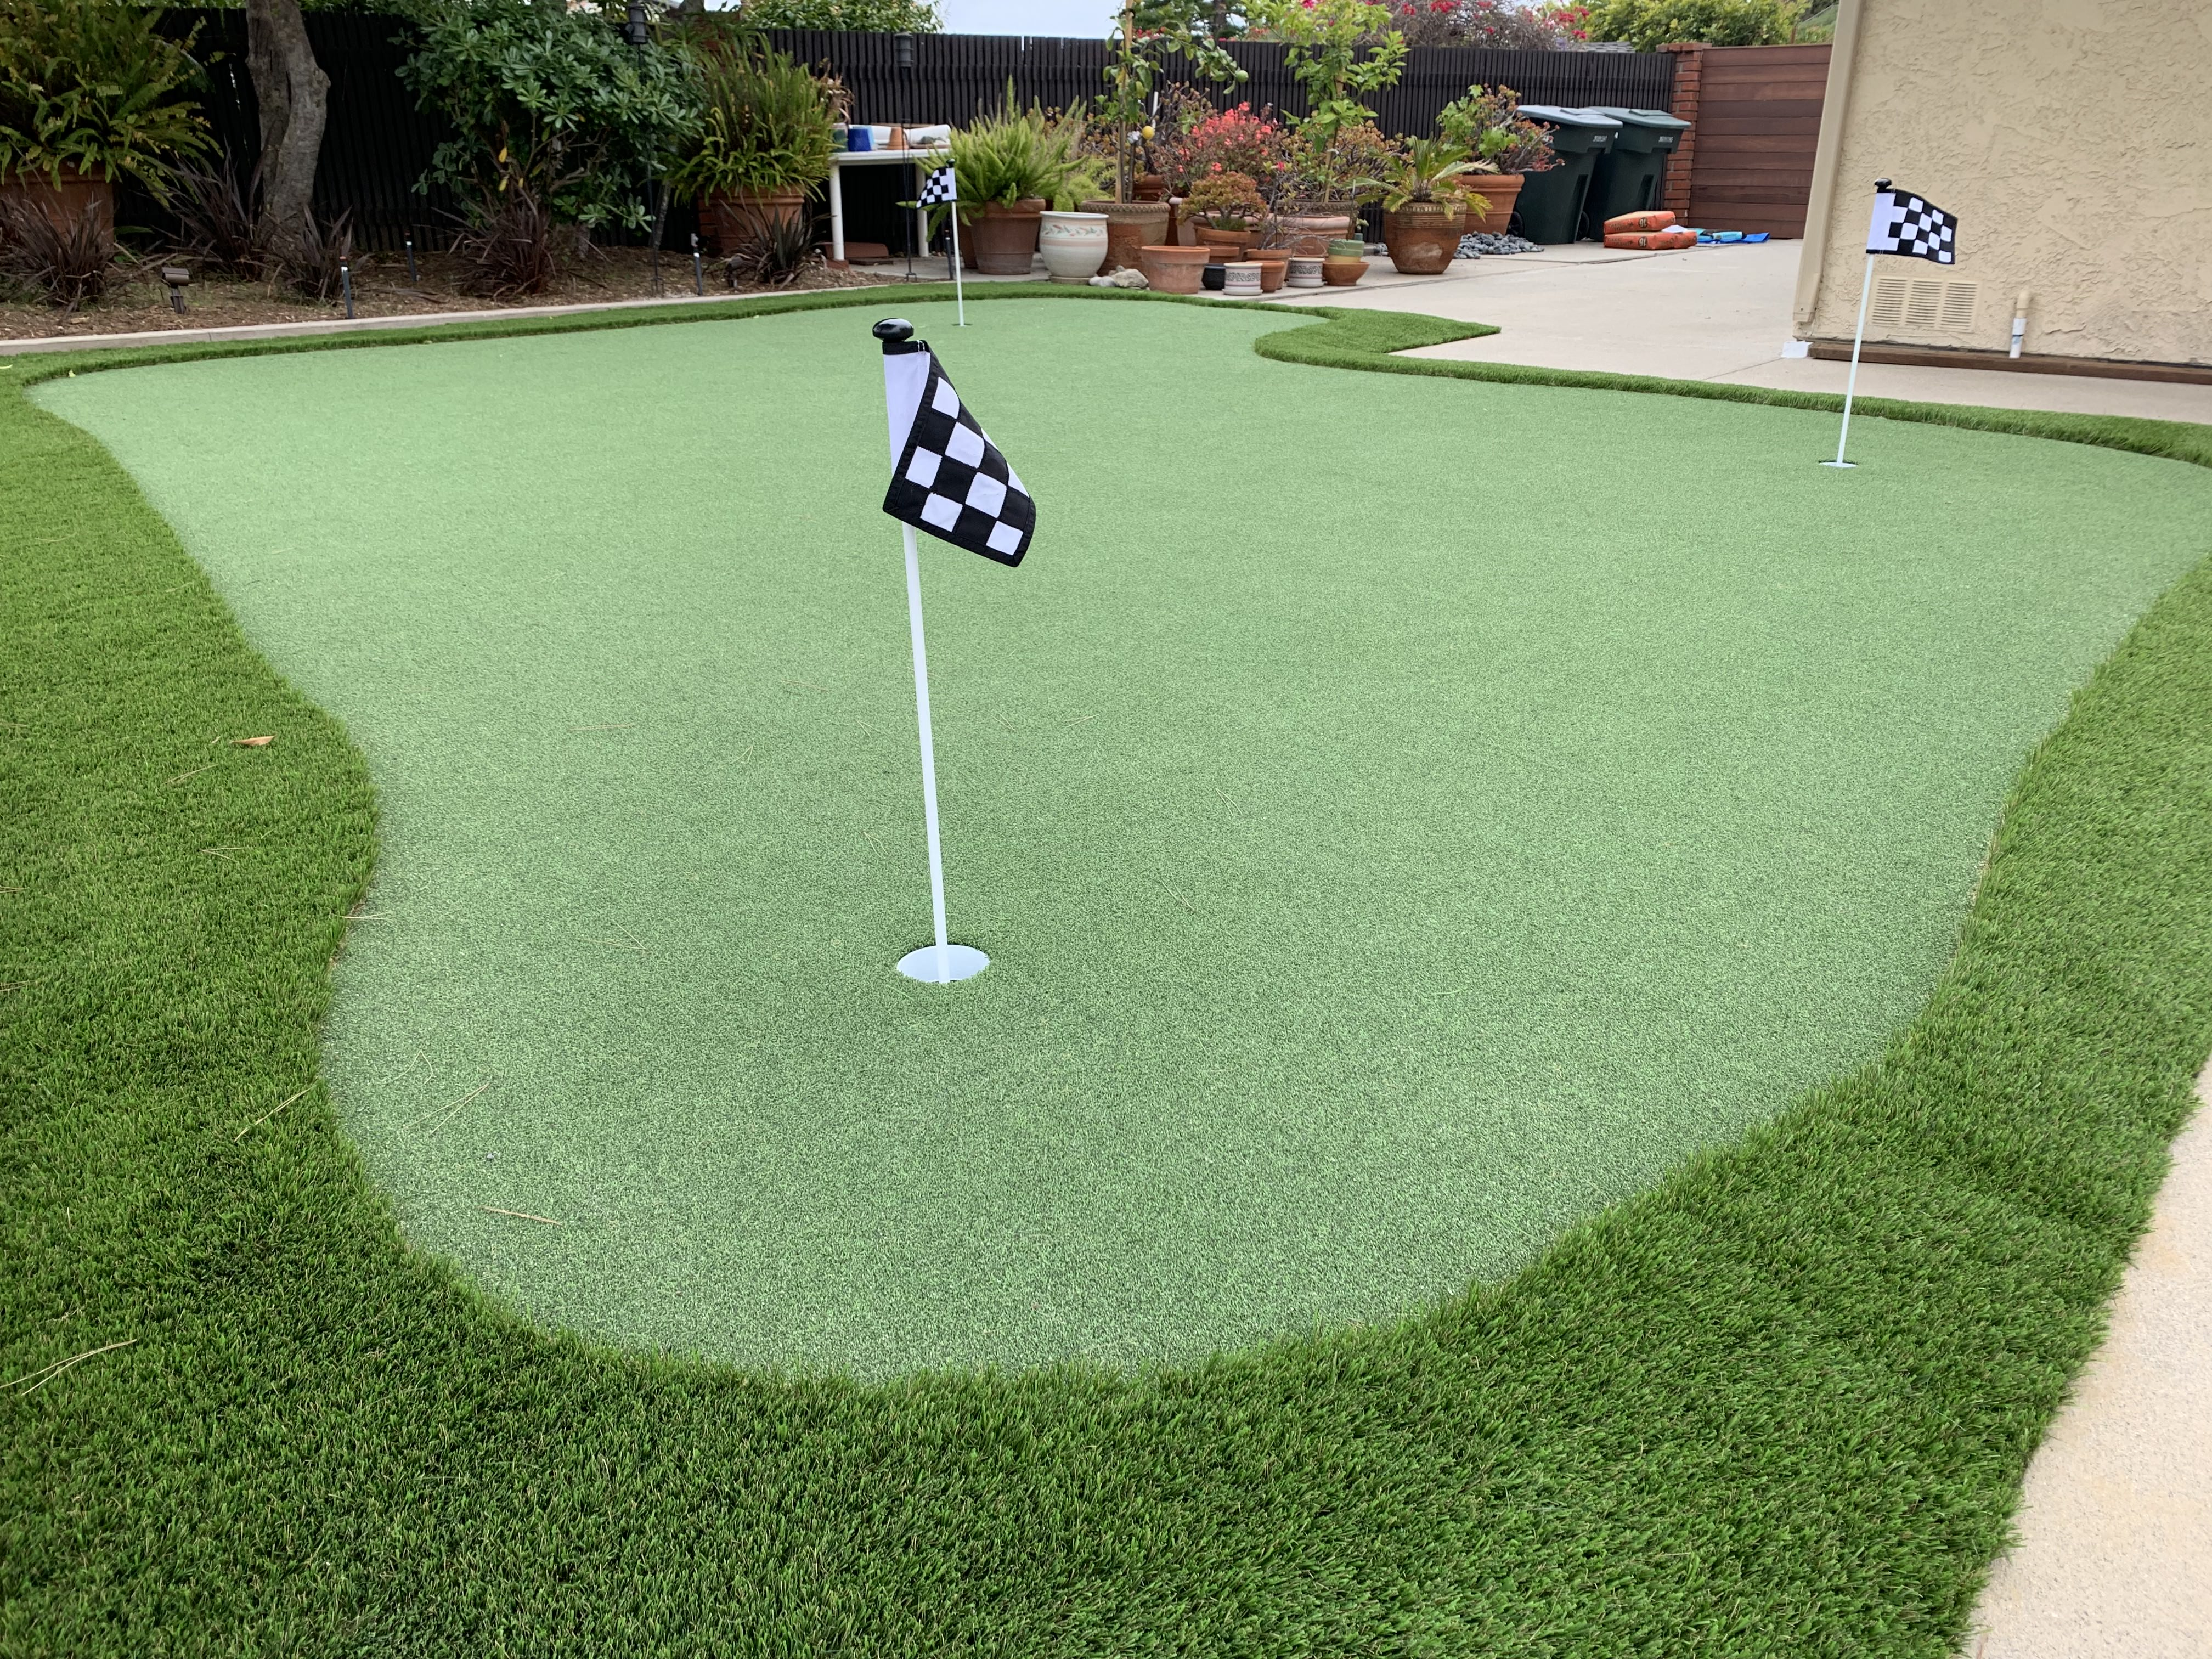 Putt-60 Bicolor best artificial grass,best fake grass,best synthetic grass,best turf,best artificial grass for home,fake green grass,green grass carpet,artificial lawn,synthetic lawn,fake lawn,turf lawn,fake grass lawn